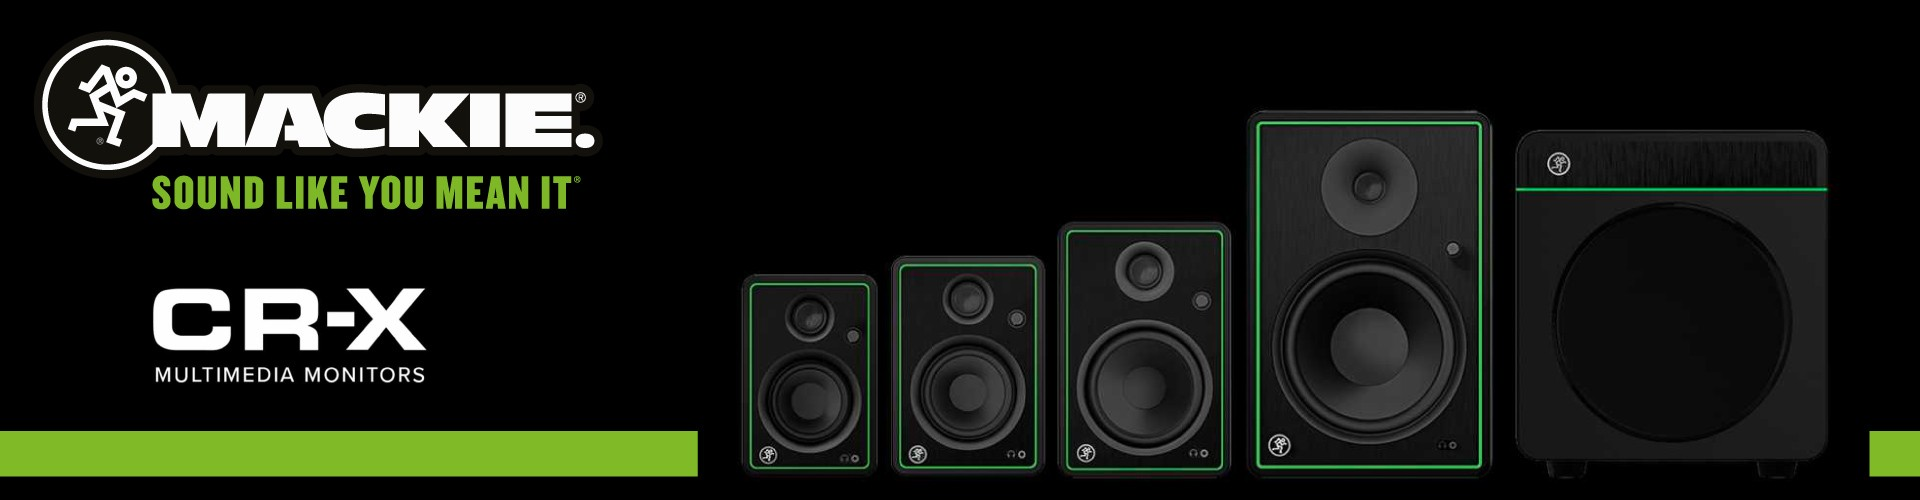 Monitores Multimedia Mackie CR-X